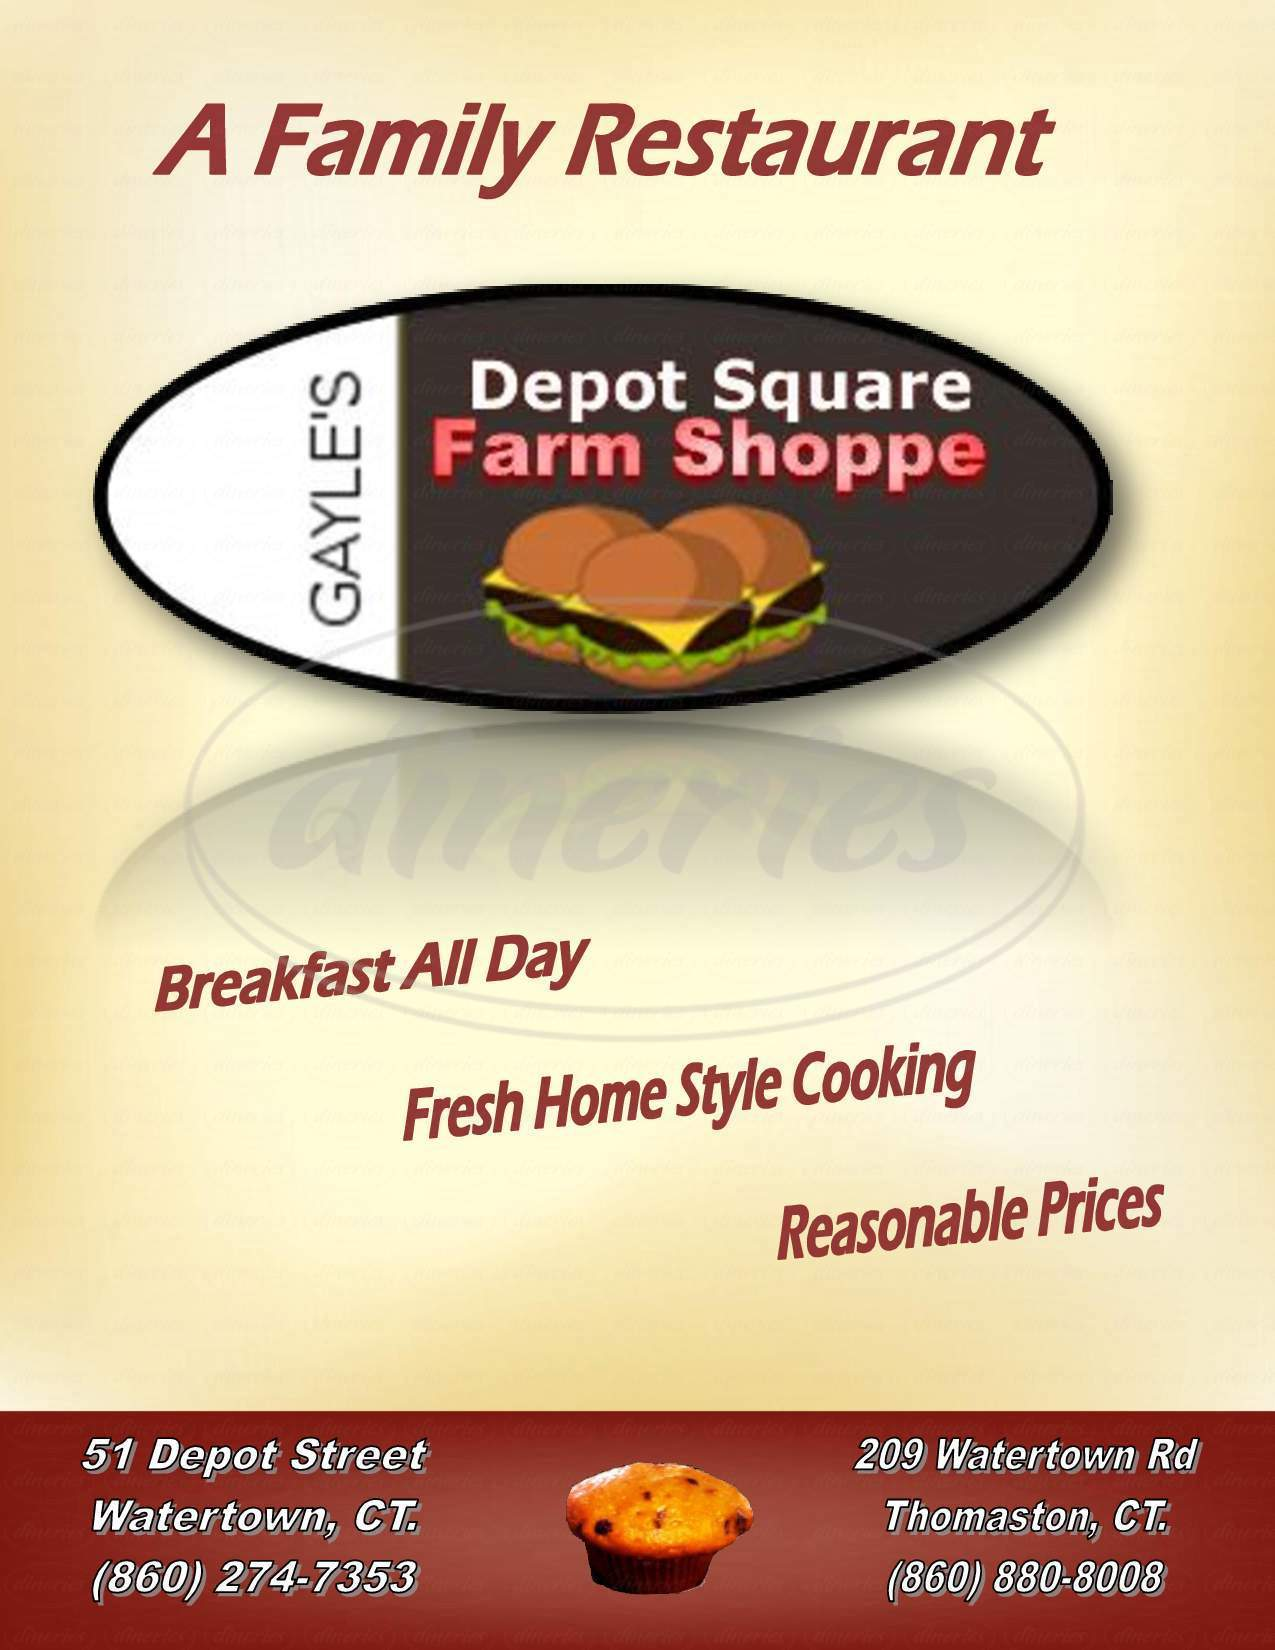 menu for Gayle's Depot Square Farm Shoppe